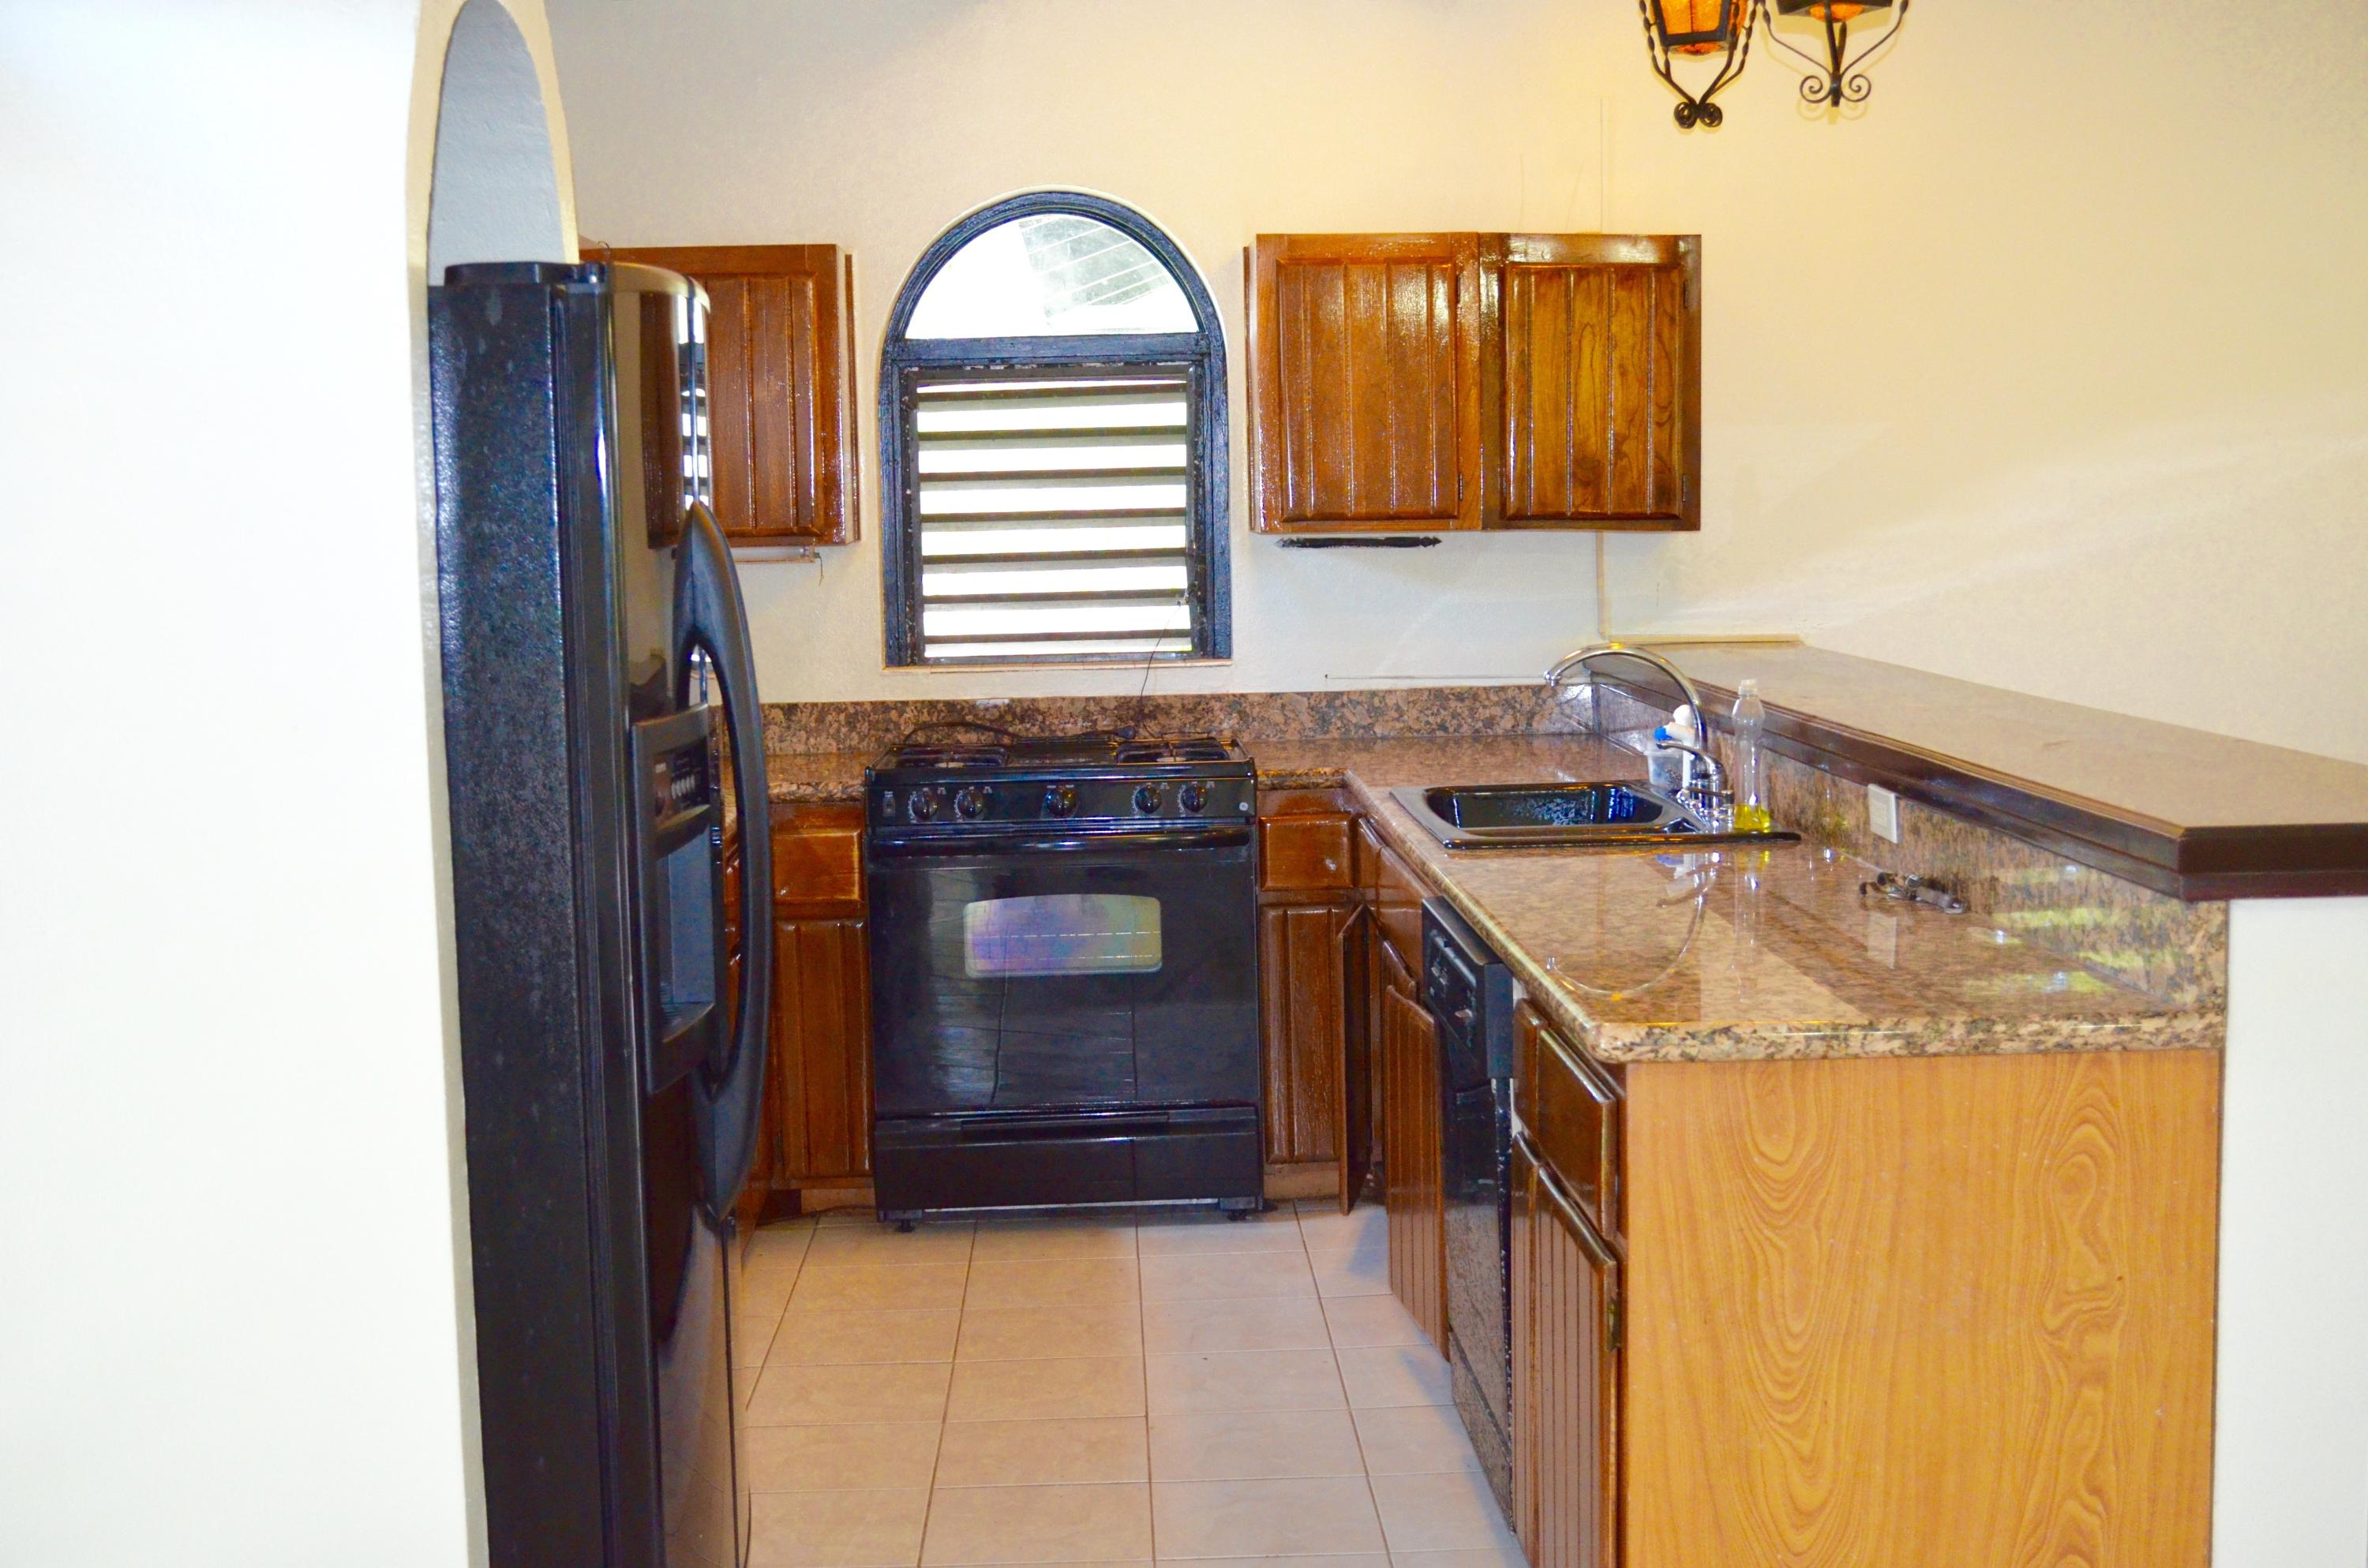 Single Family Home for Rent at 192 Mary's Fancy QU 192 Mary's Fancy QU St Croix, Virgin Islands 00820 United States Virgin Islands